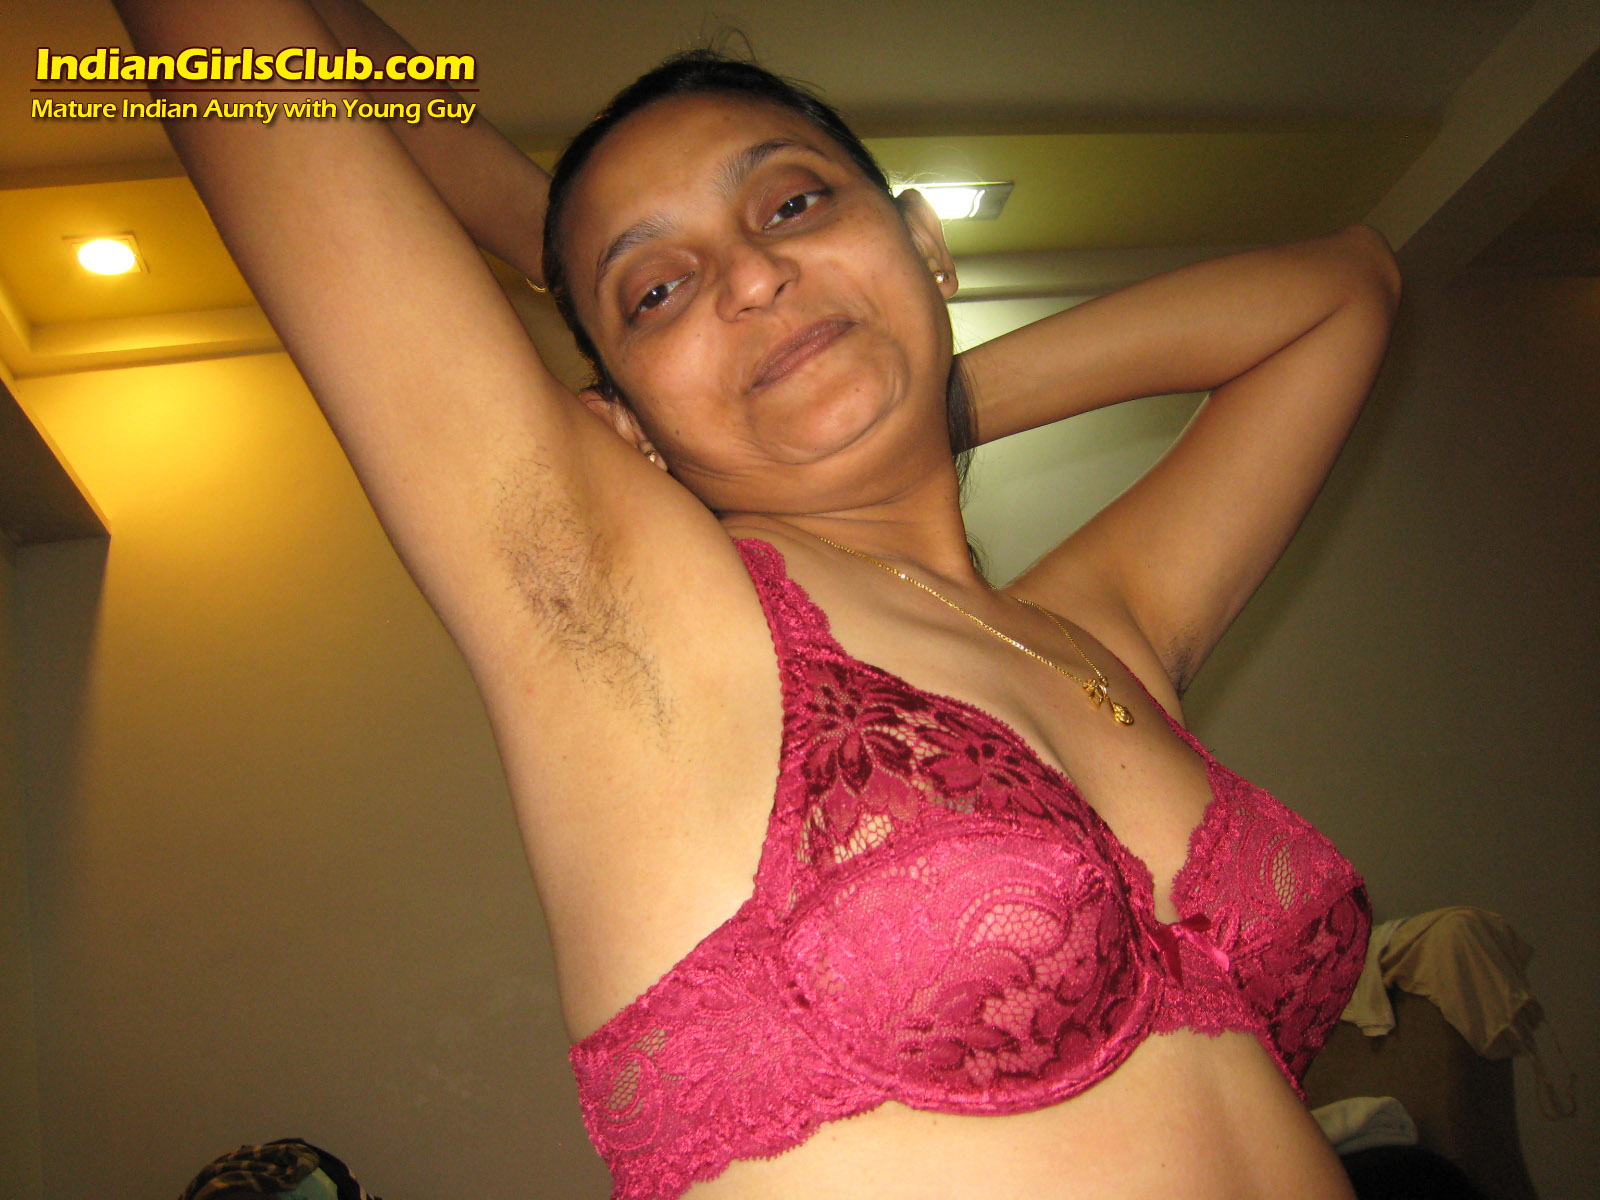 Mature indian girls